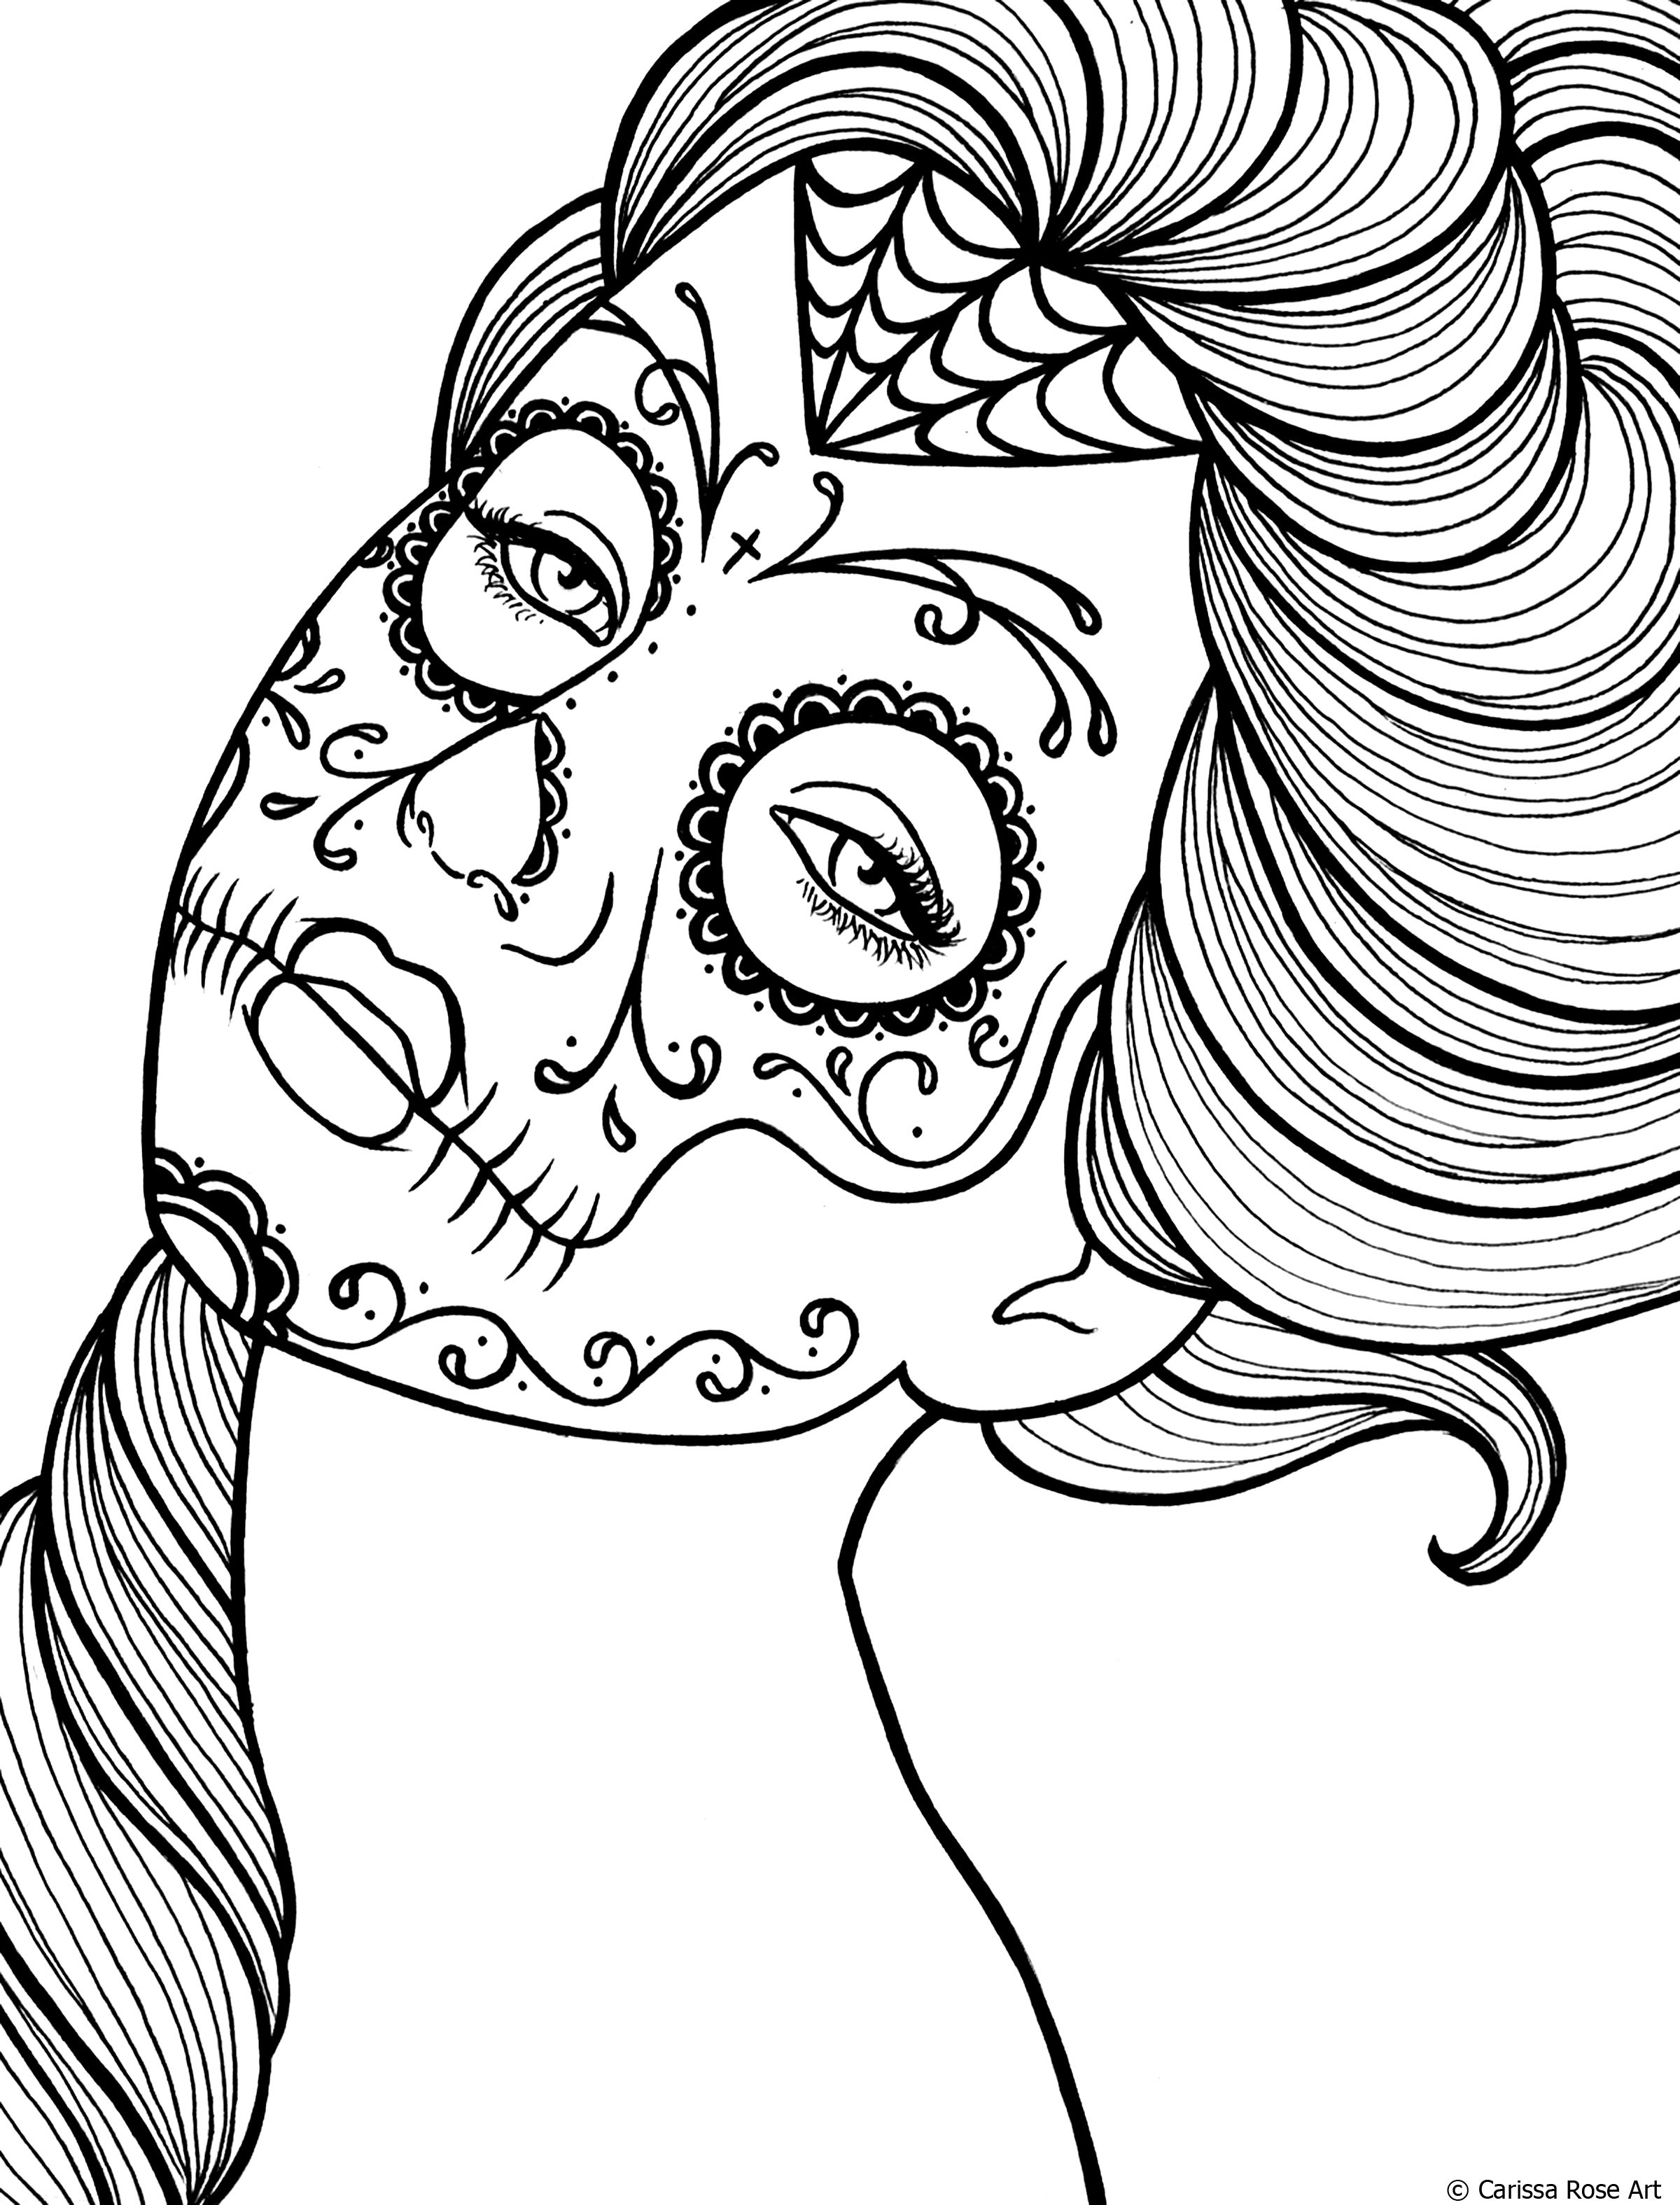 Coloring book for girl - Free Printable Day Of The Dead Coloring Book Page By Misscarissarose Deviantart Com On